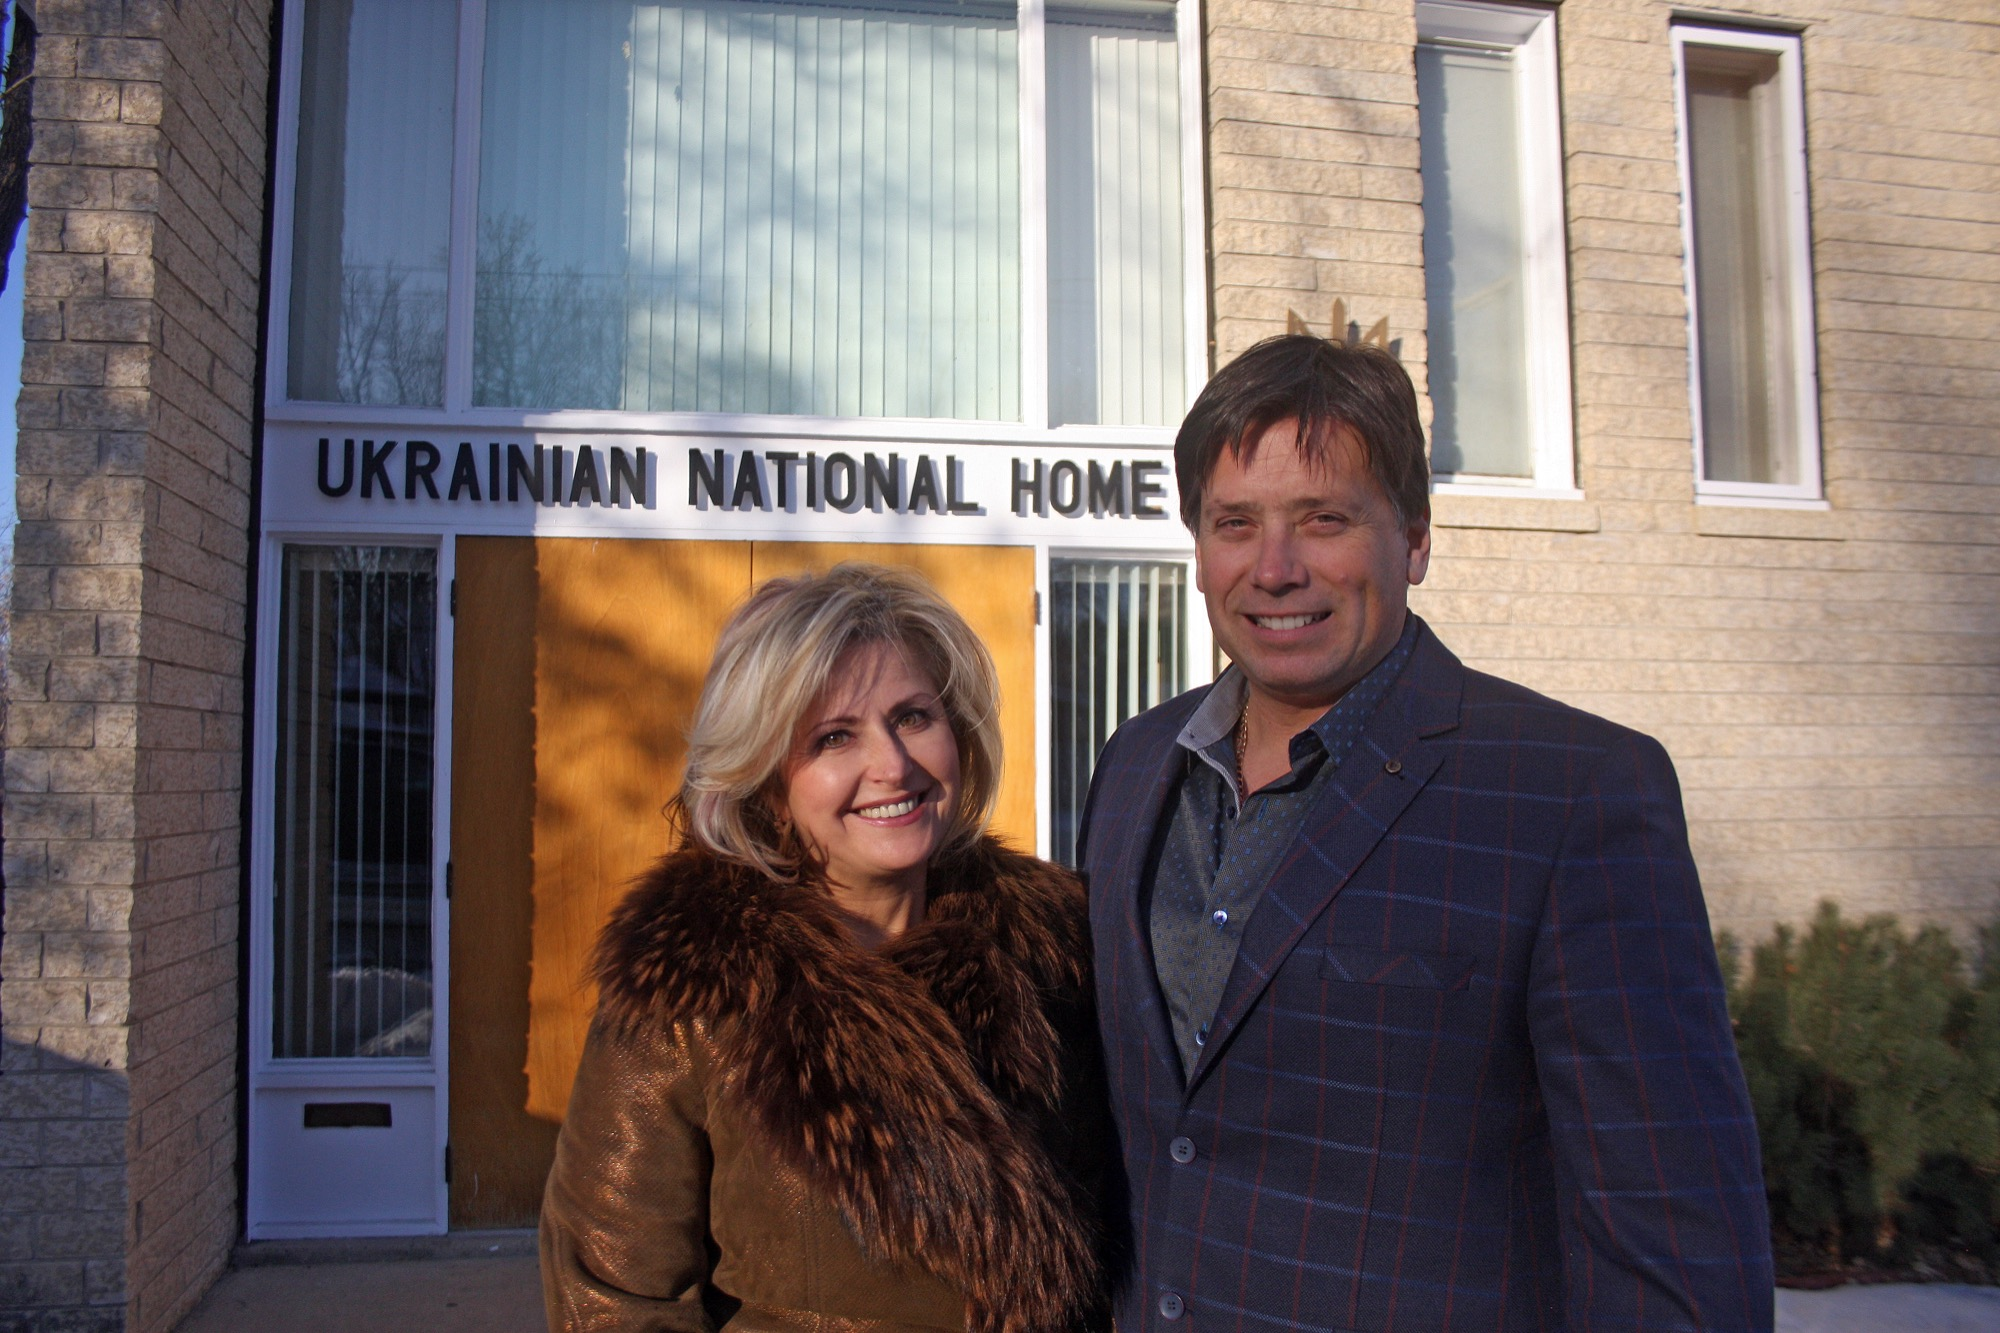 Iryna and Jerry Belinsky are seen outside the Ukrainian National Home at 1133 Stickney Ave., which they help run and which hosts activities that maintain Ukrainian culture in Brandon. Iryna, who is originally from Ukraine, relocated to Brandon to pursue greater economic opportunity. Jerry's grandfather immigrated to Canada from Ukraine near the beginning of the 20th century.